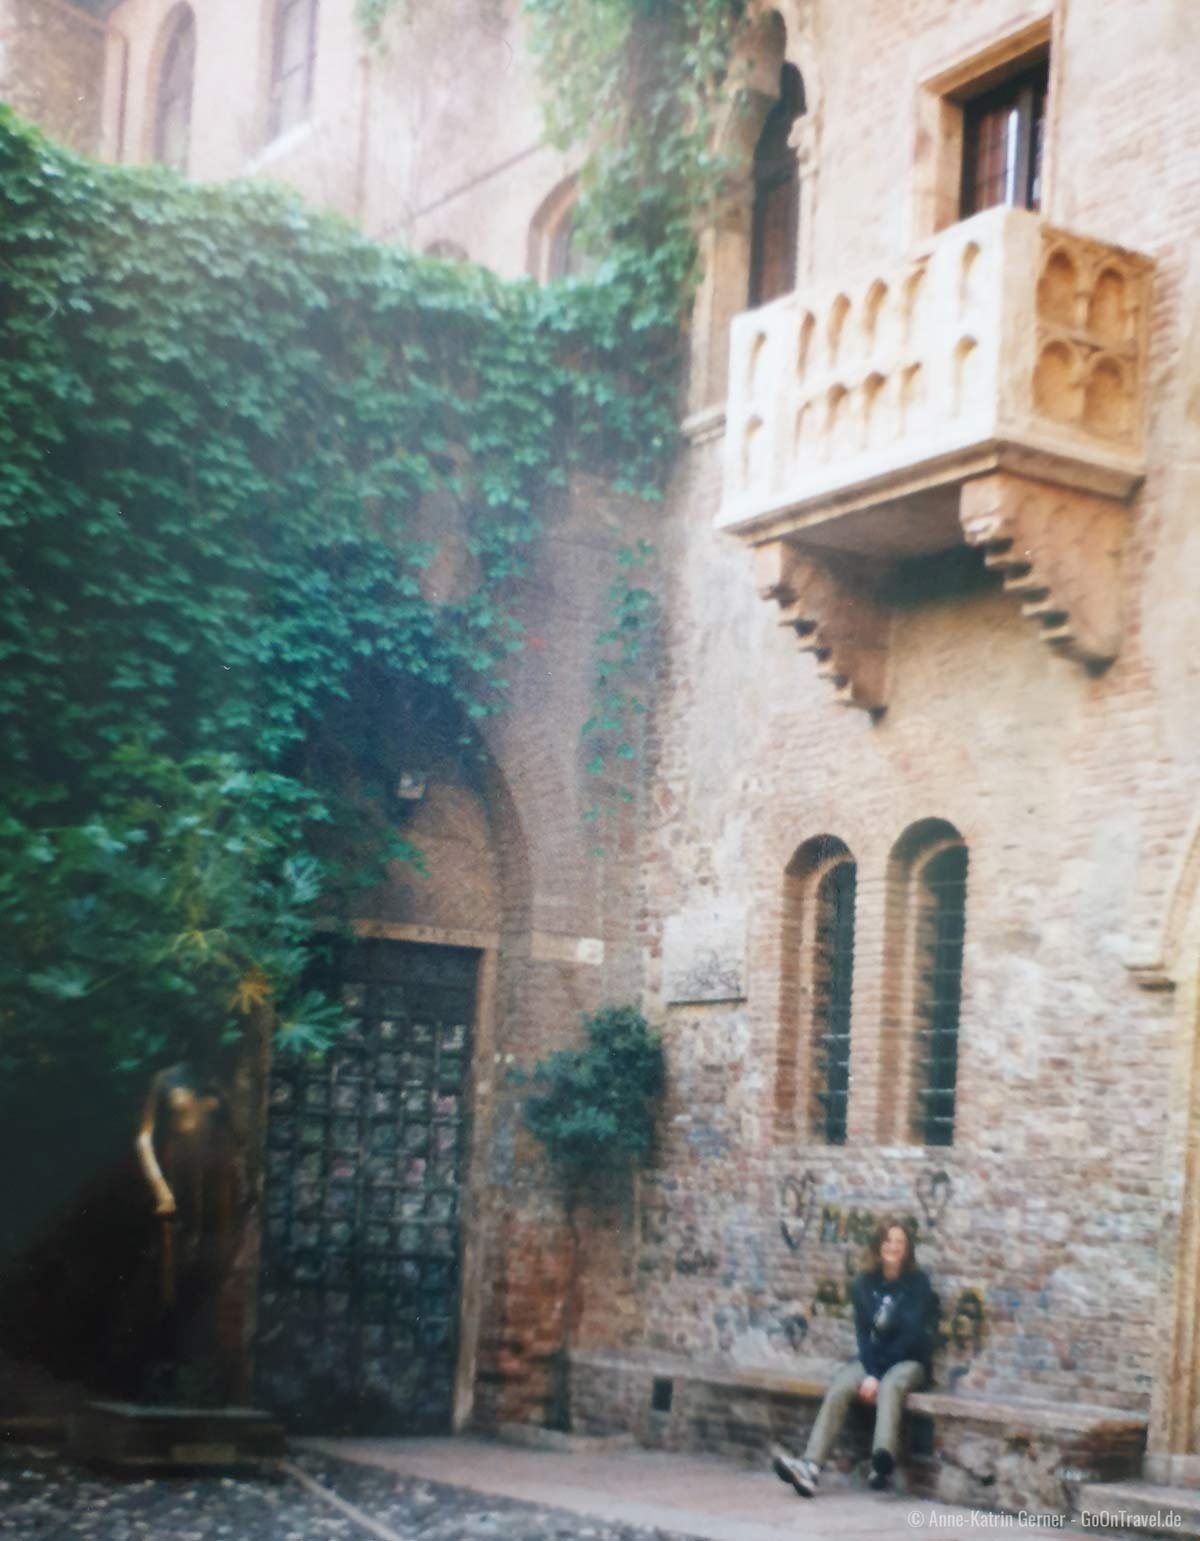 Reisen in den 90ern: kaum Besucher an Julia´s Balkon in Verona